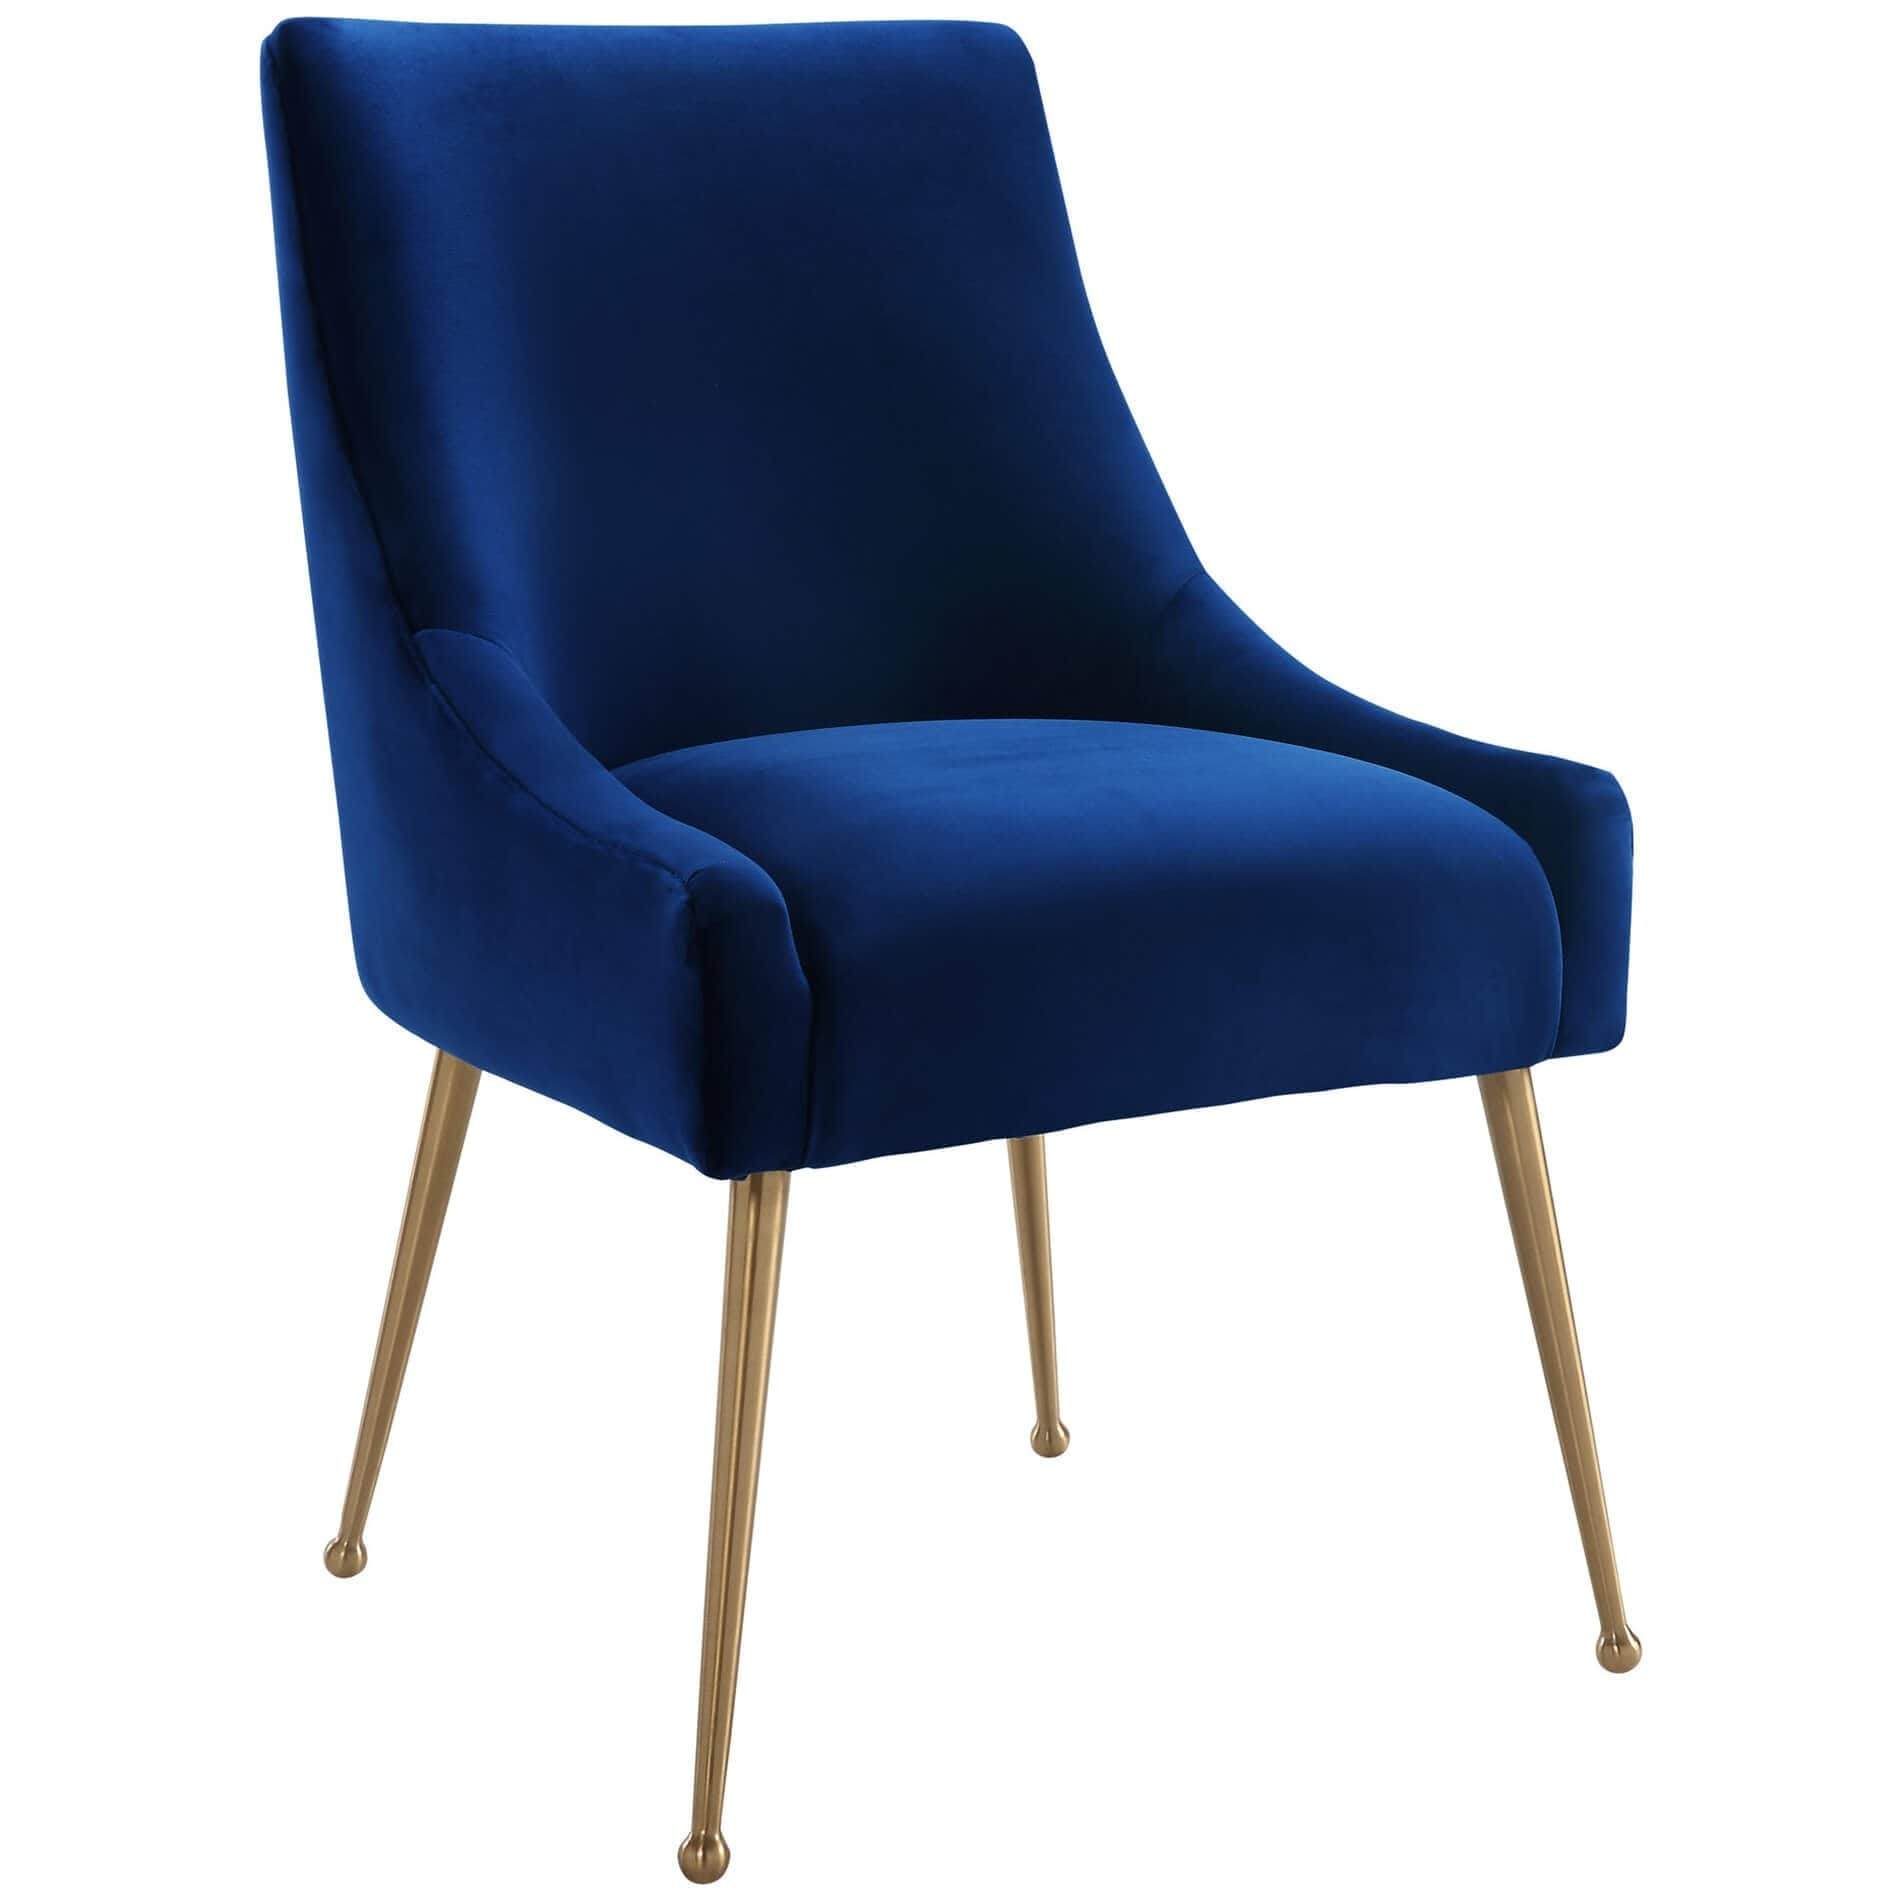 Brilliant Beatrix Side Chair Navy Brushed Gold Base High Fashion Home Inzonedesignstudio Interior Chair Design Inzonedesignstudiocom